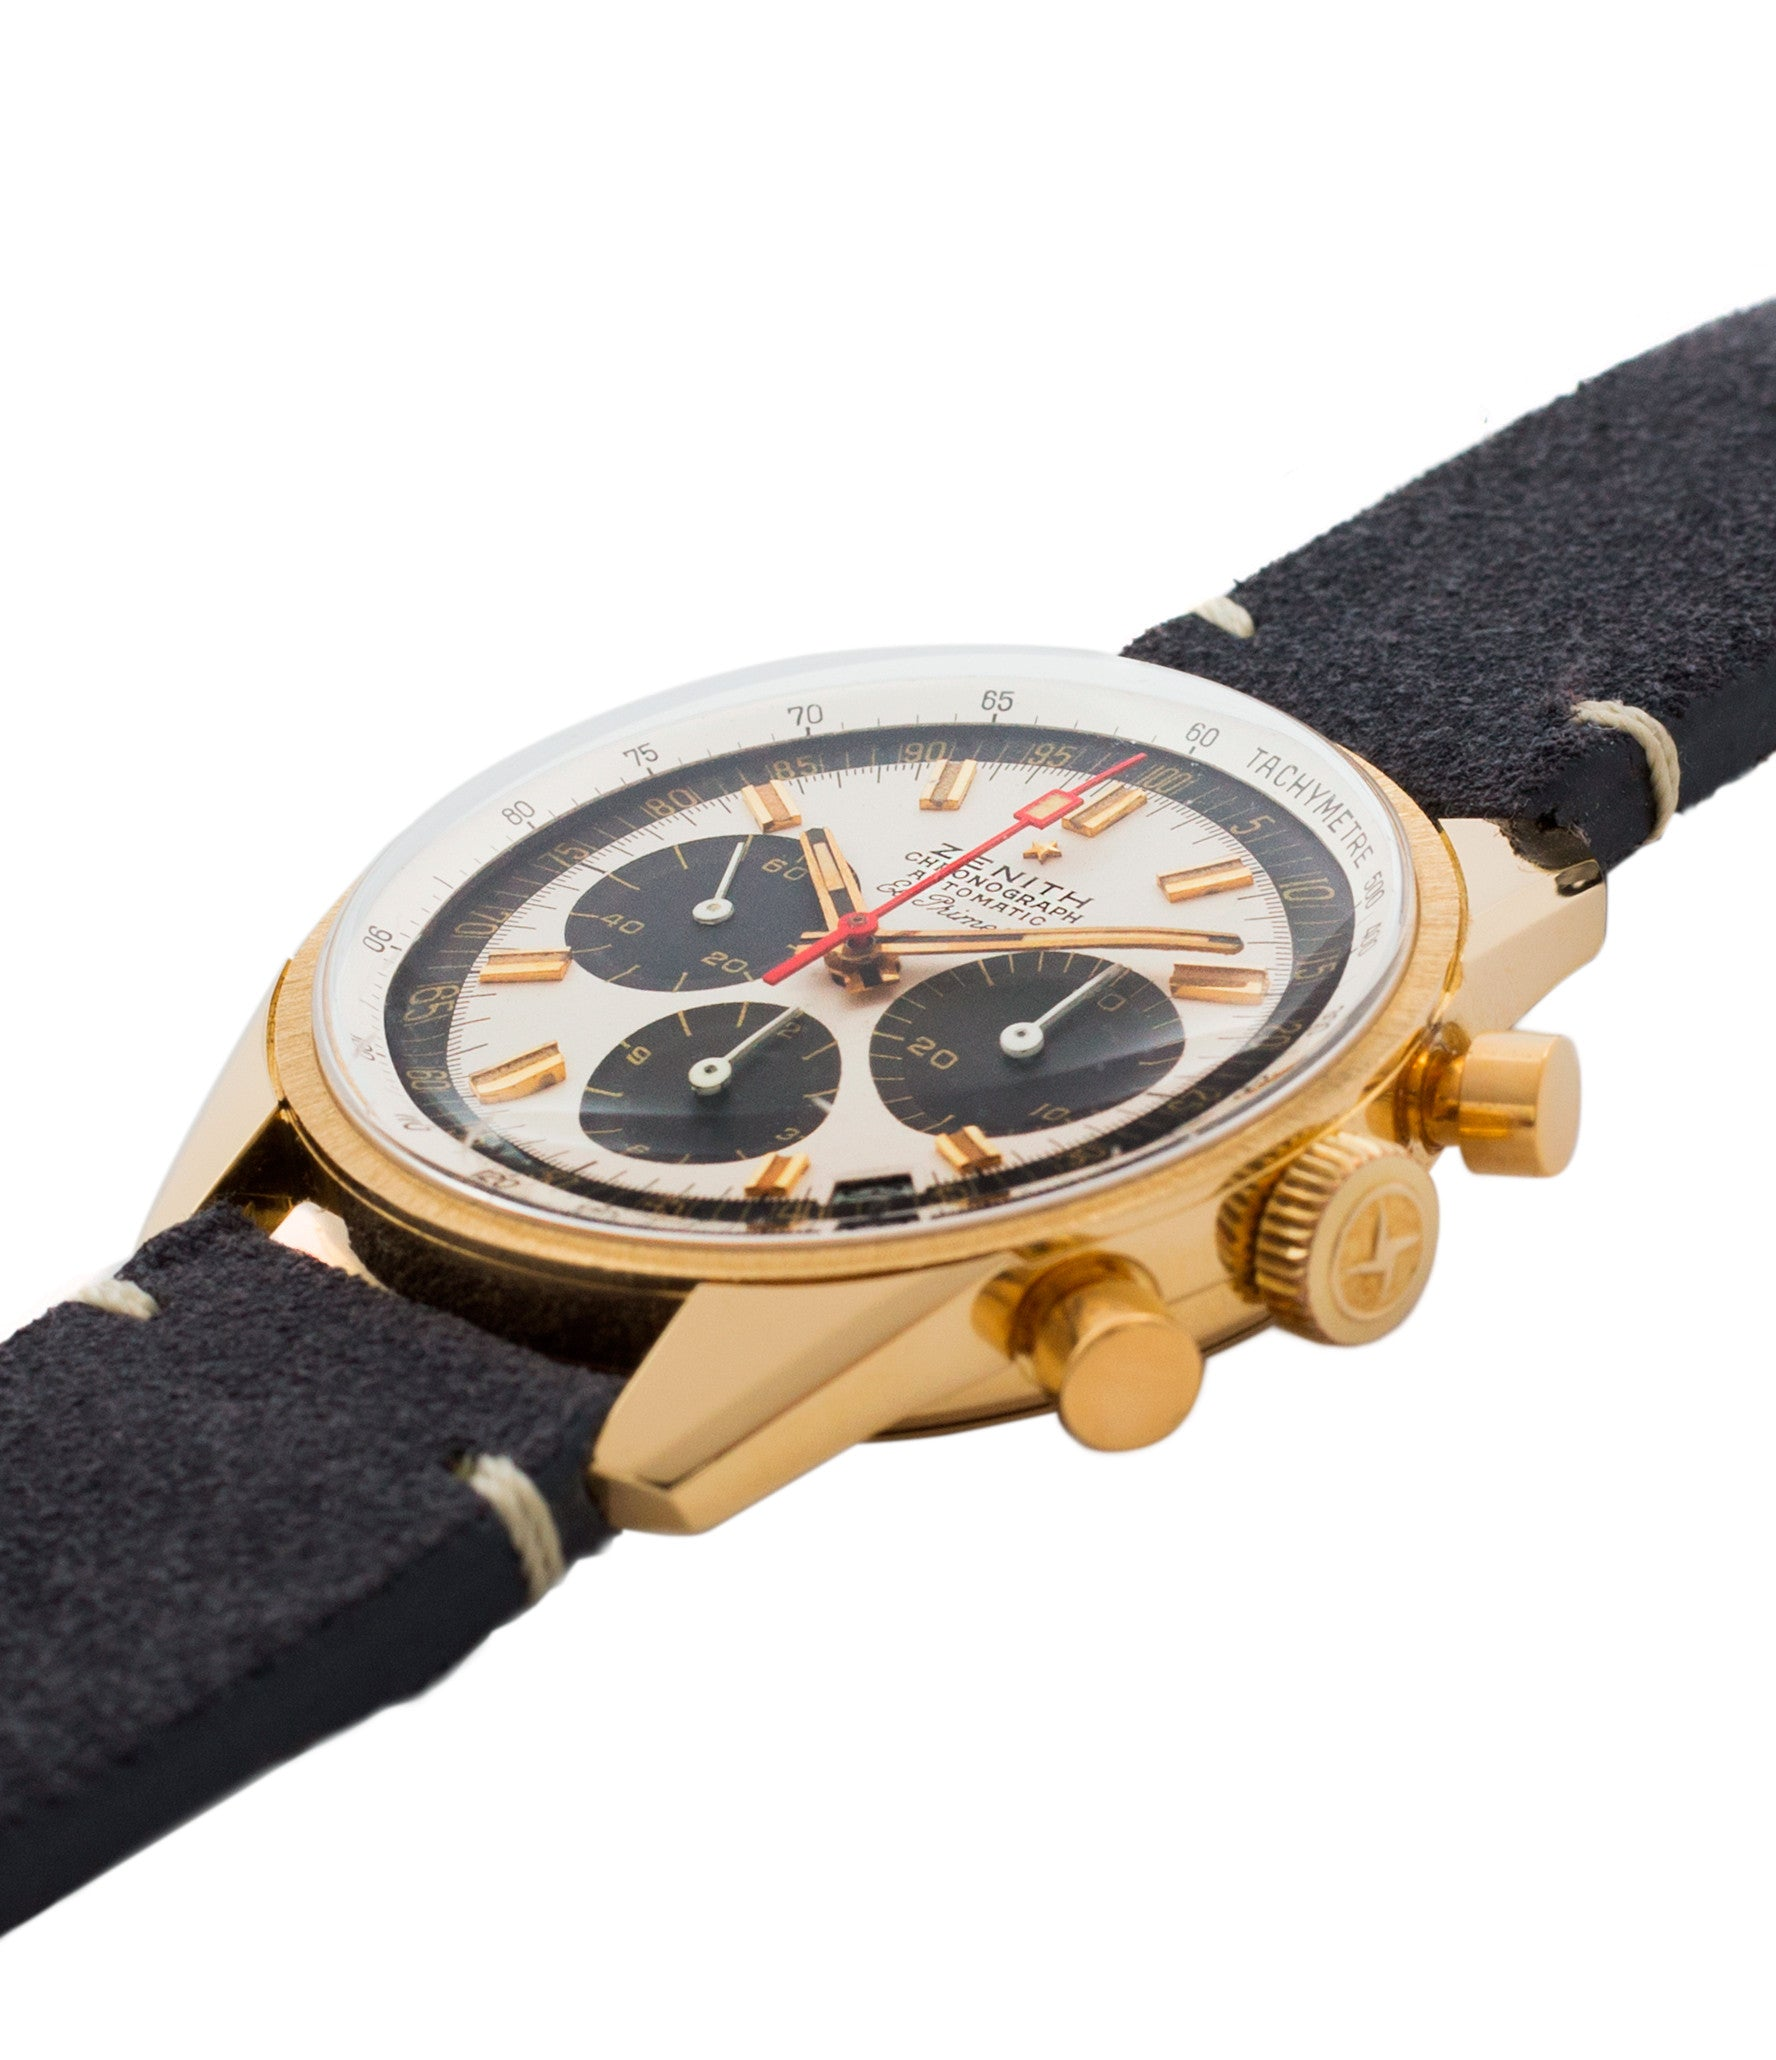 selling Zenith El Primero G381 rare yellow gold vintage chronograph date watch for sale online at A Collected Man London vintage watch specialist